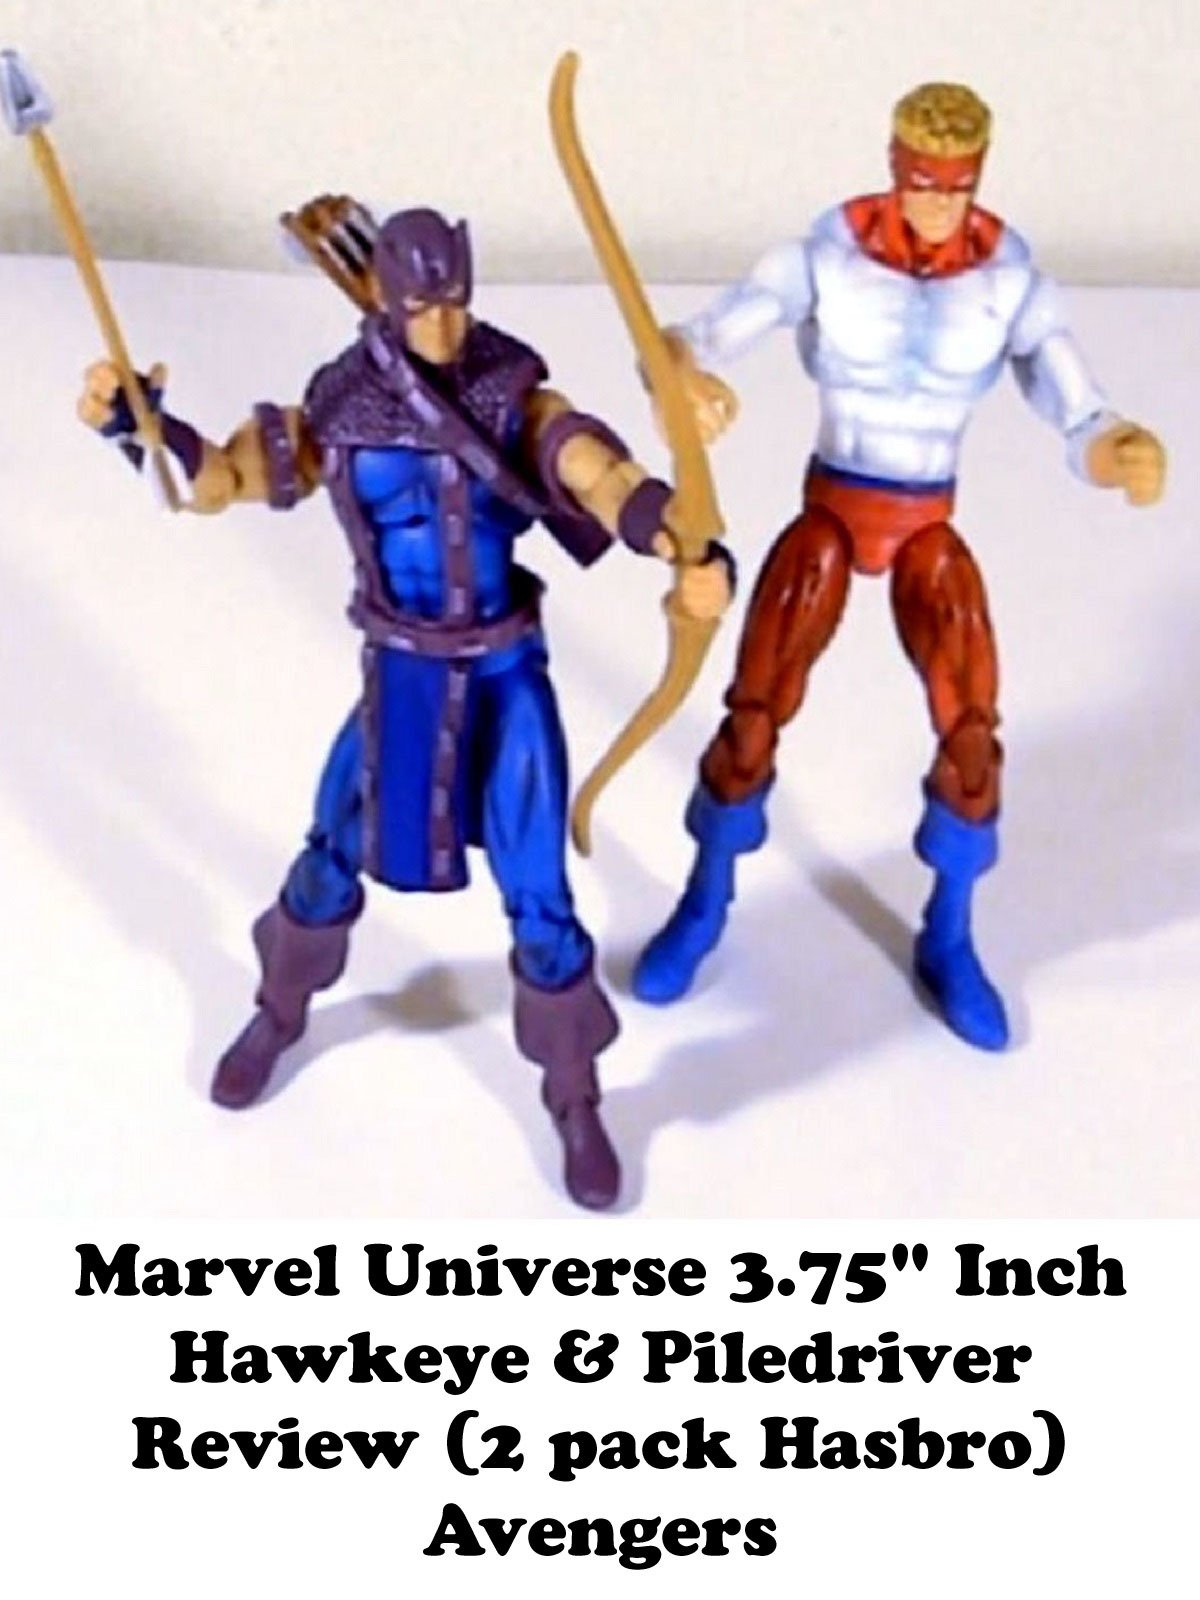 "Review: Marvel Universe 3.75"" Inch Hawkeye & Piledriver Review (2 pack Hasbro) Avengers"